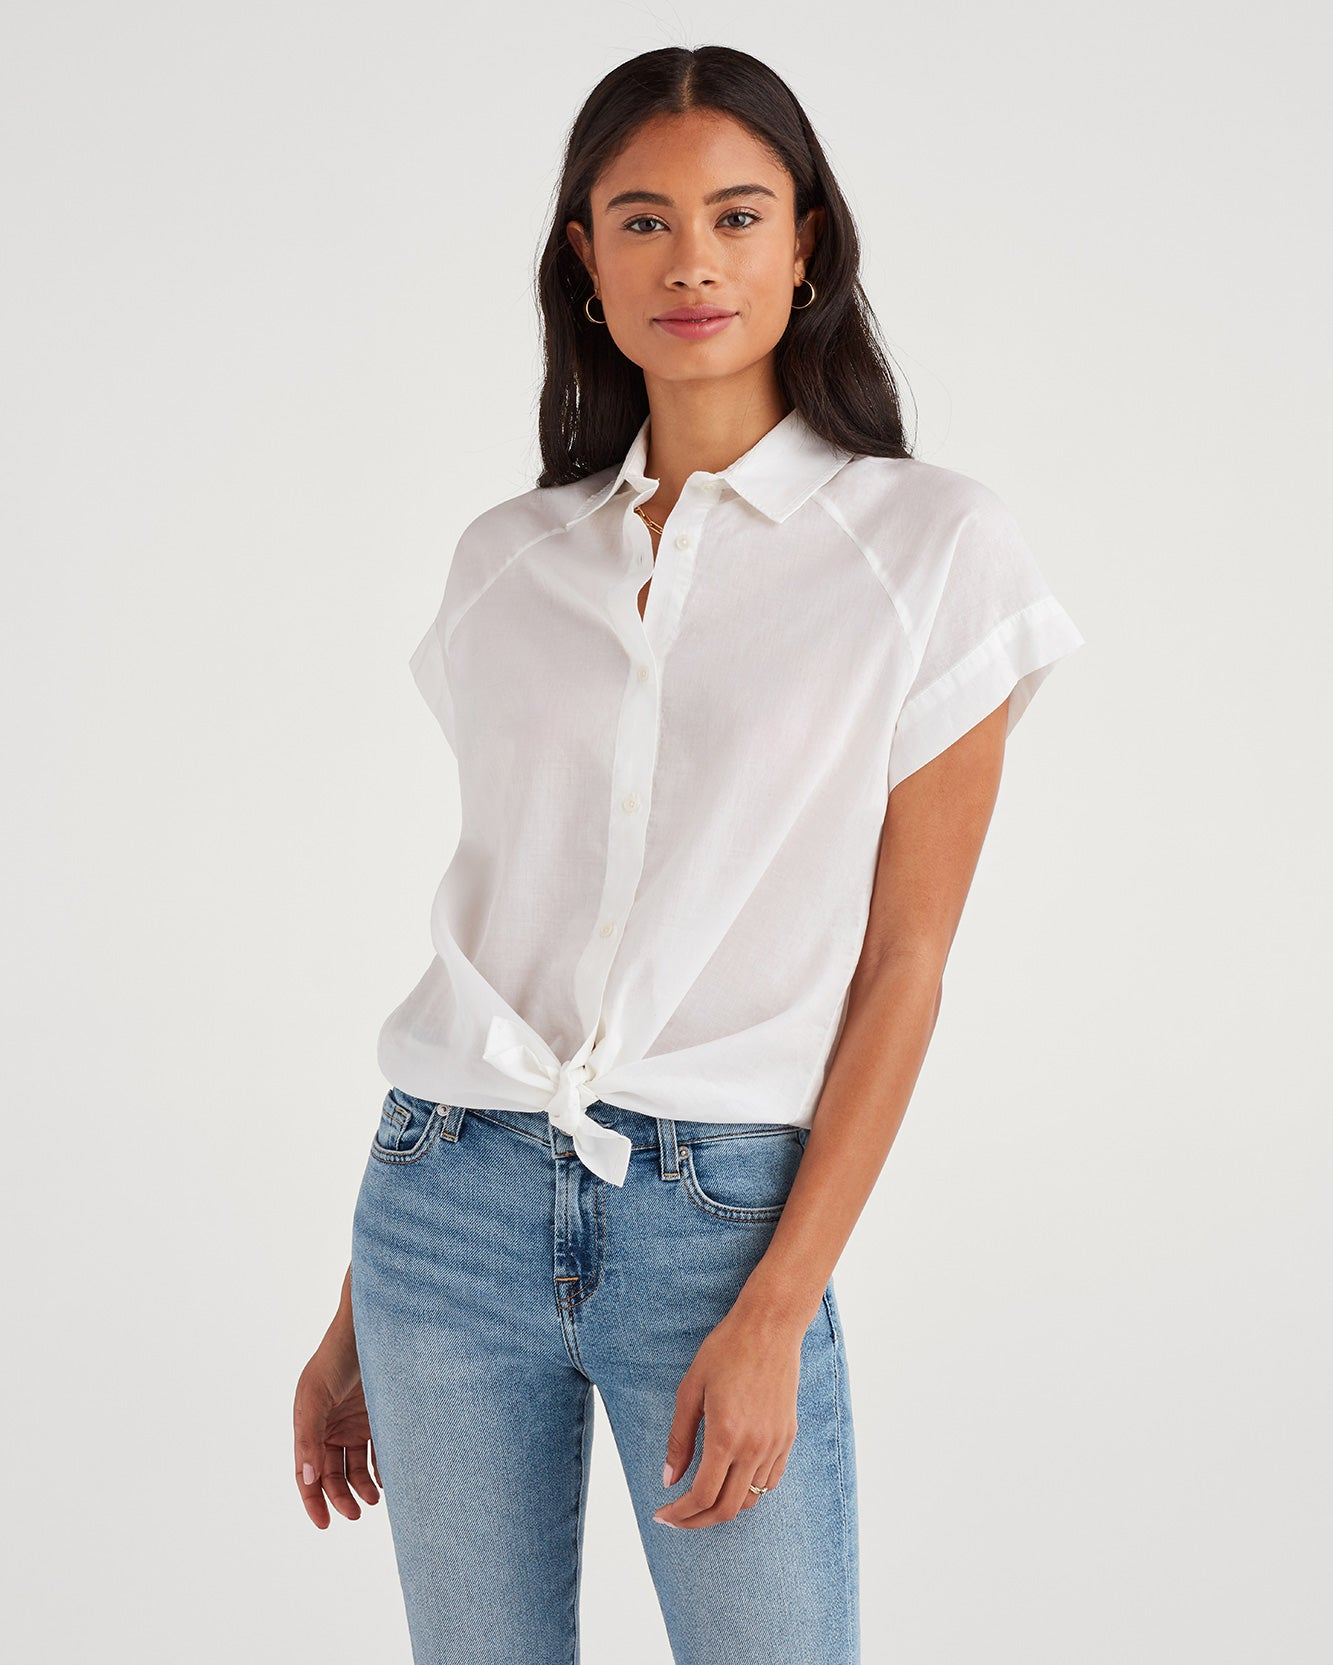 Image of Cap Sleeve Tie Front Shirt in White